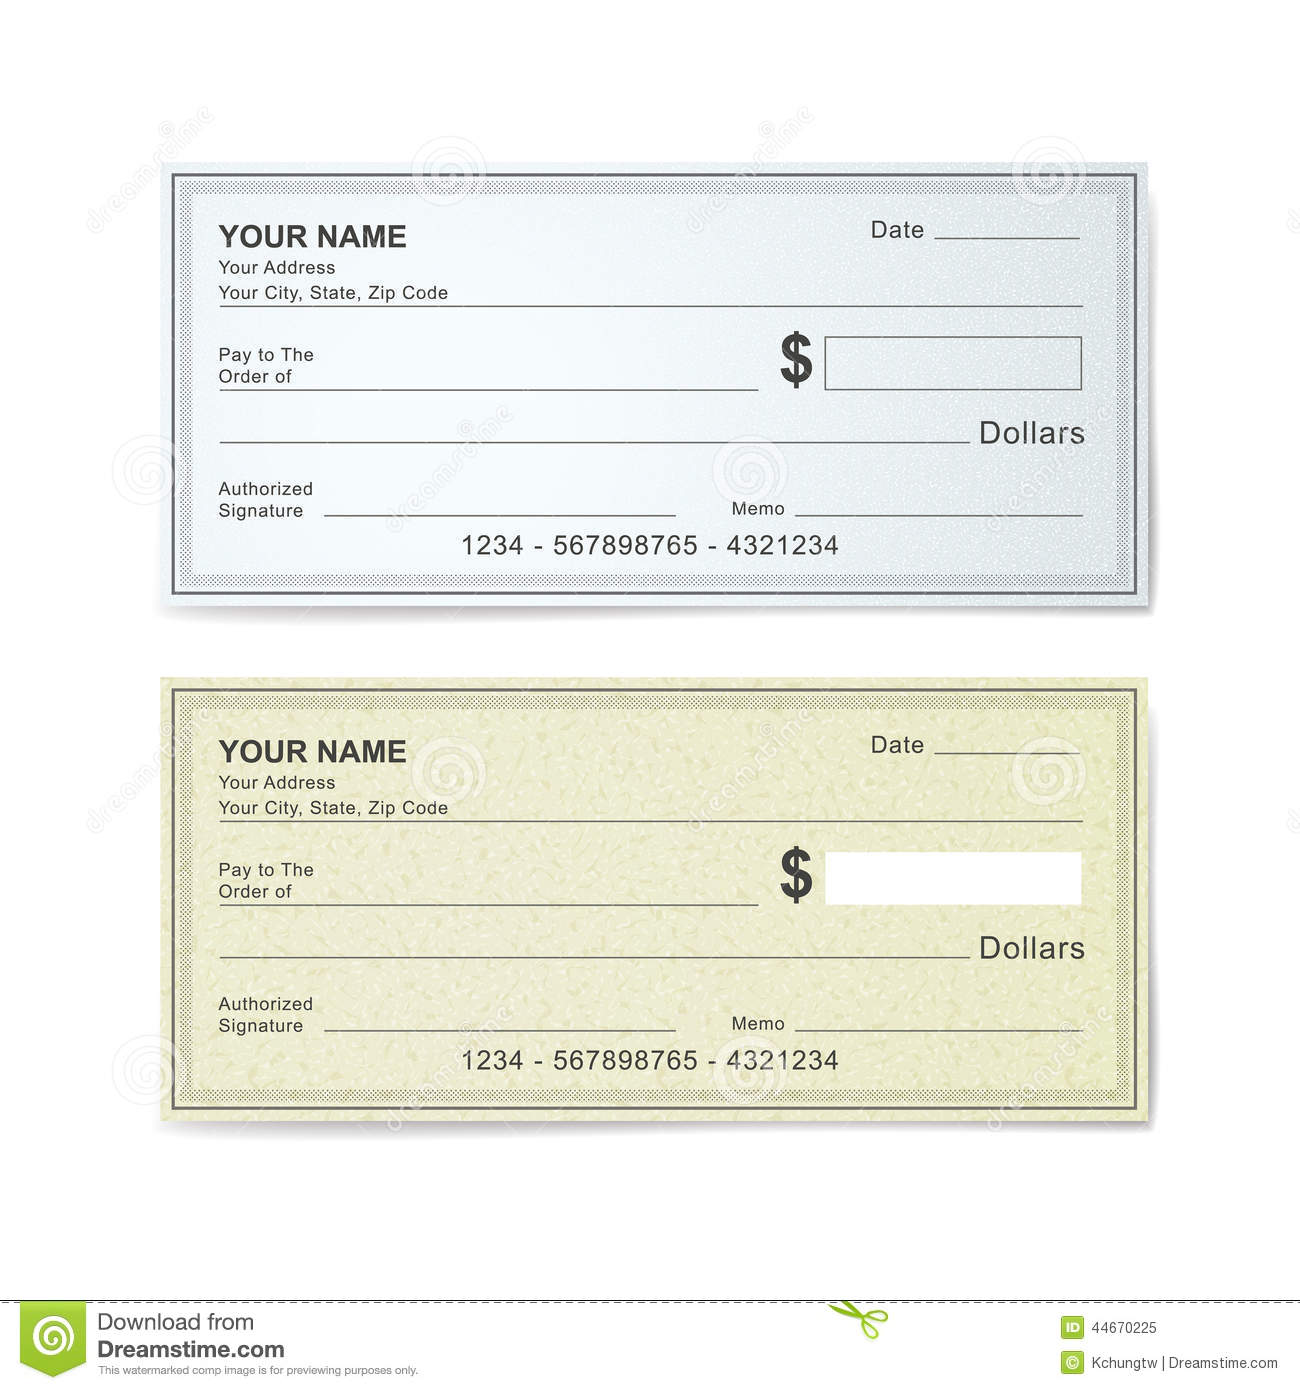 Music Management personal check examples